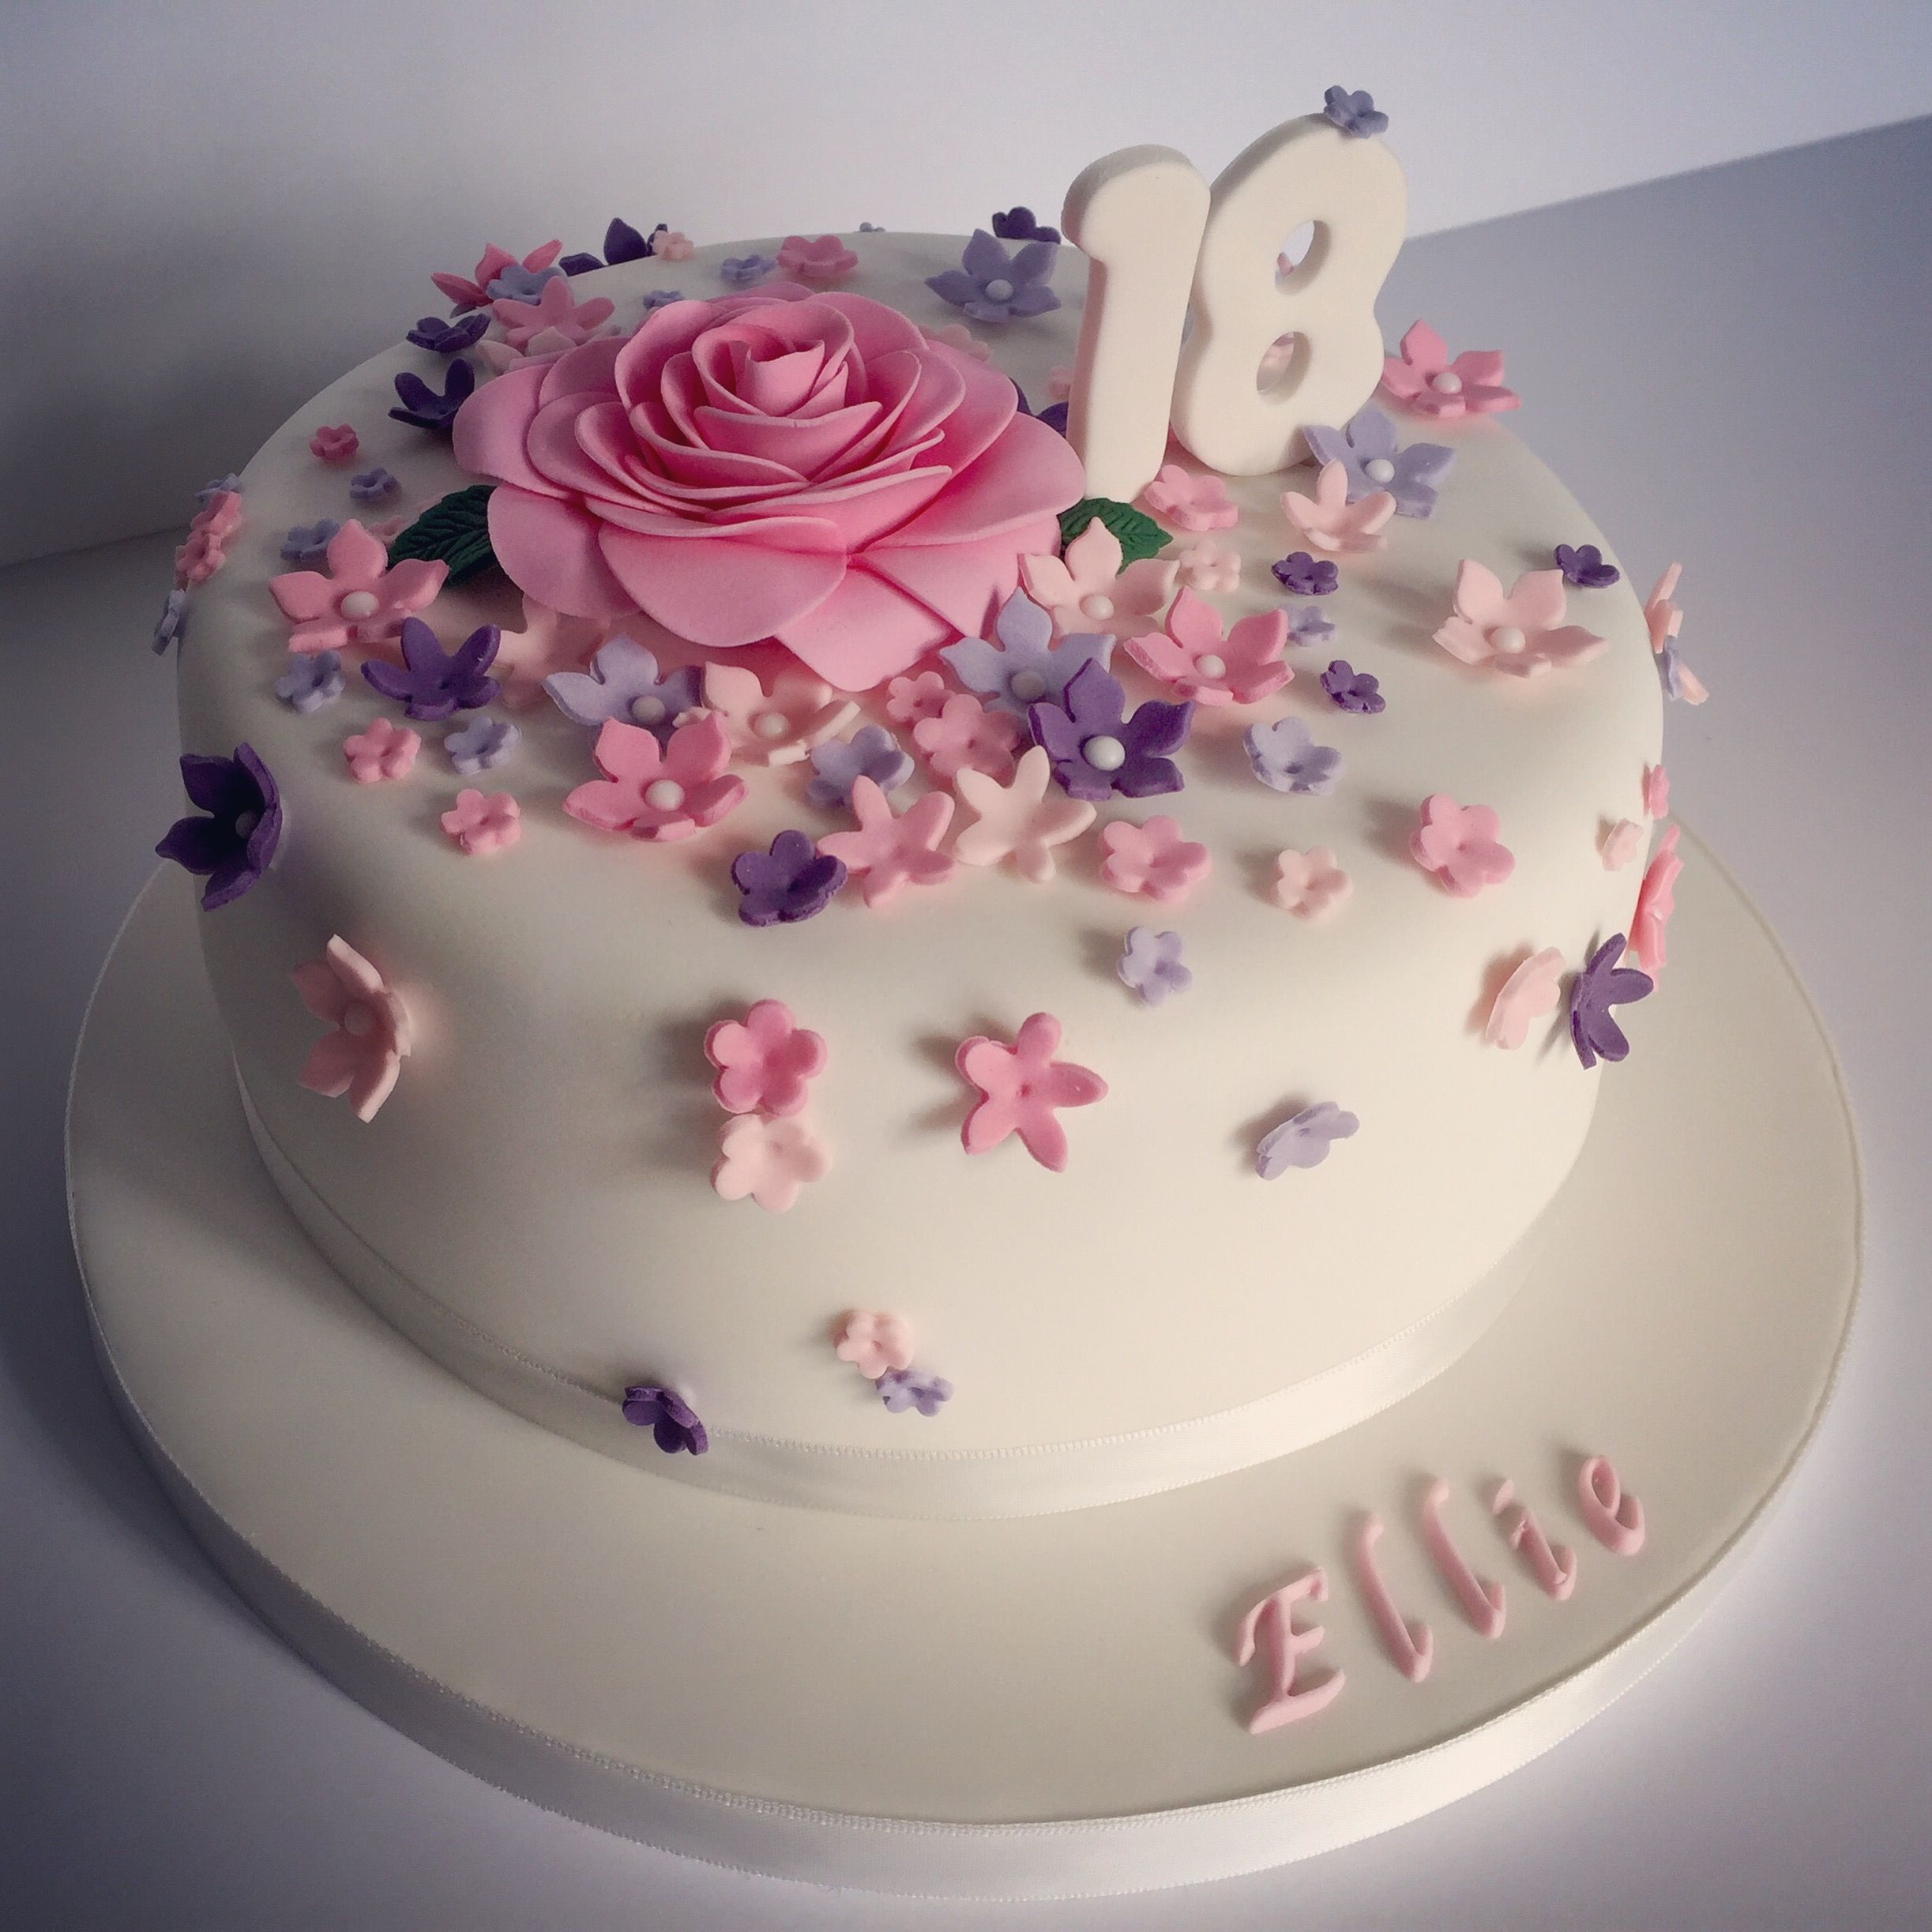 18Th Birthday Cake Designs Pretty 18th Birthday Cake For Pretty Girl Design Elina Prawito